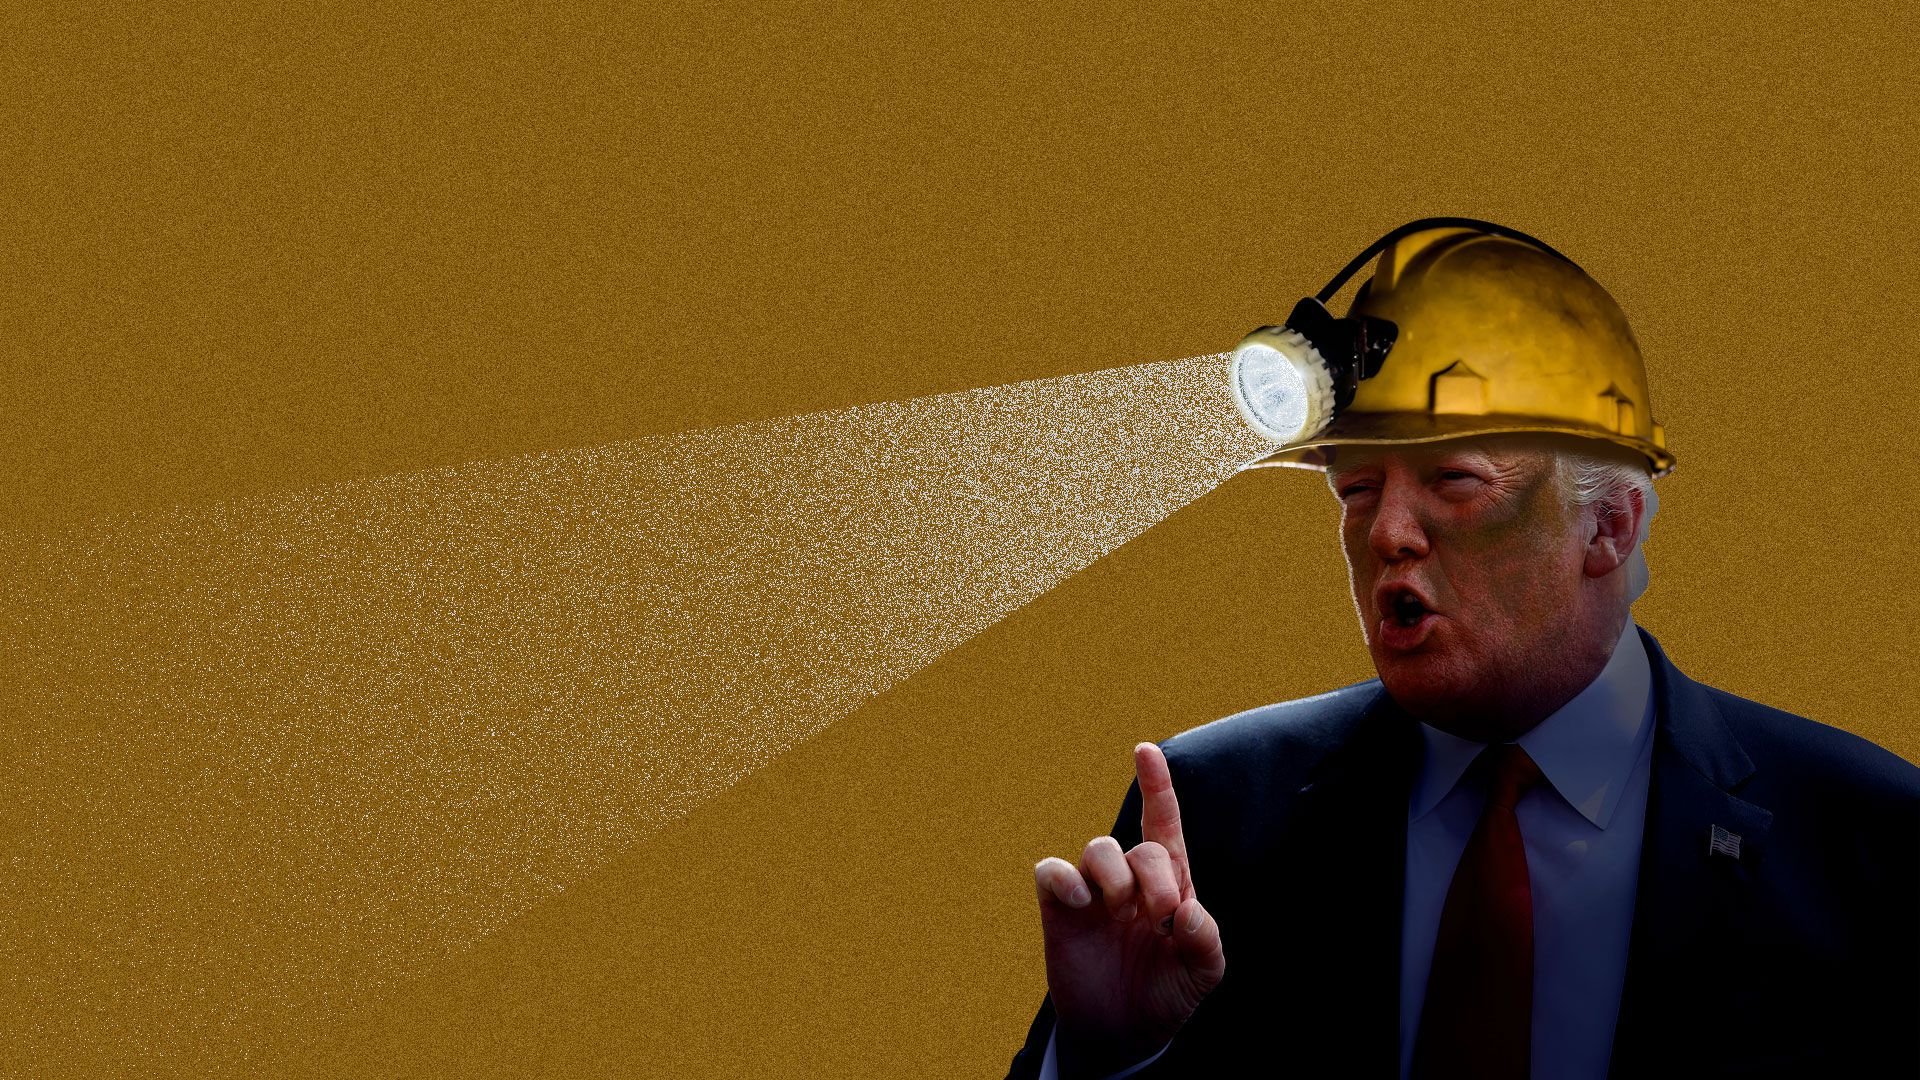 Donald Trump wearing a mining hat with an attached flashlight